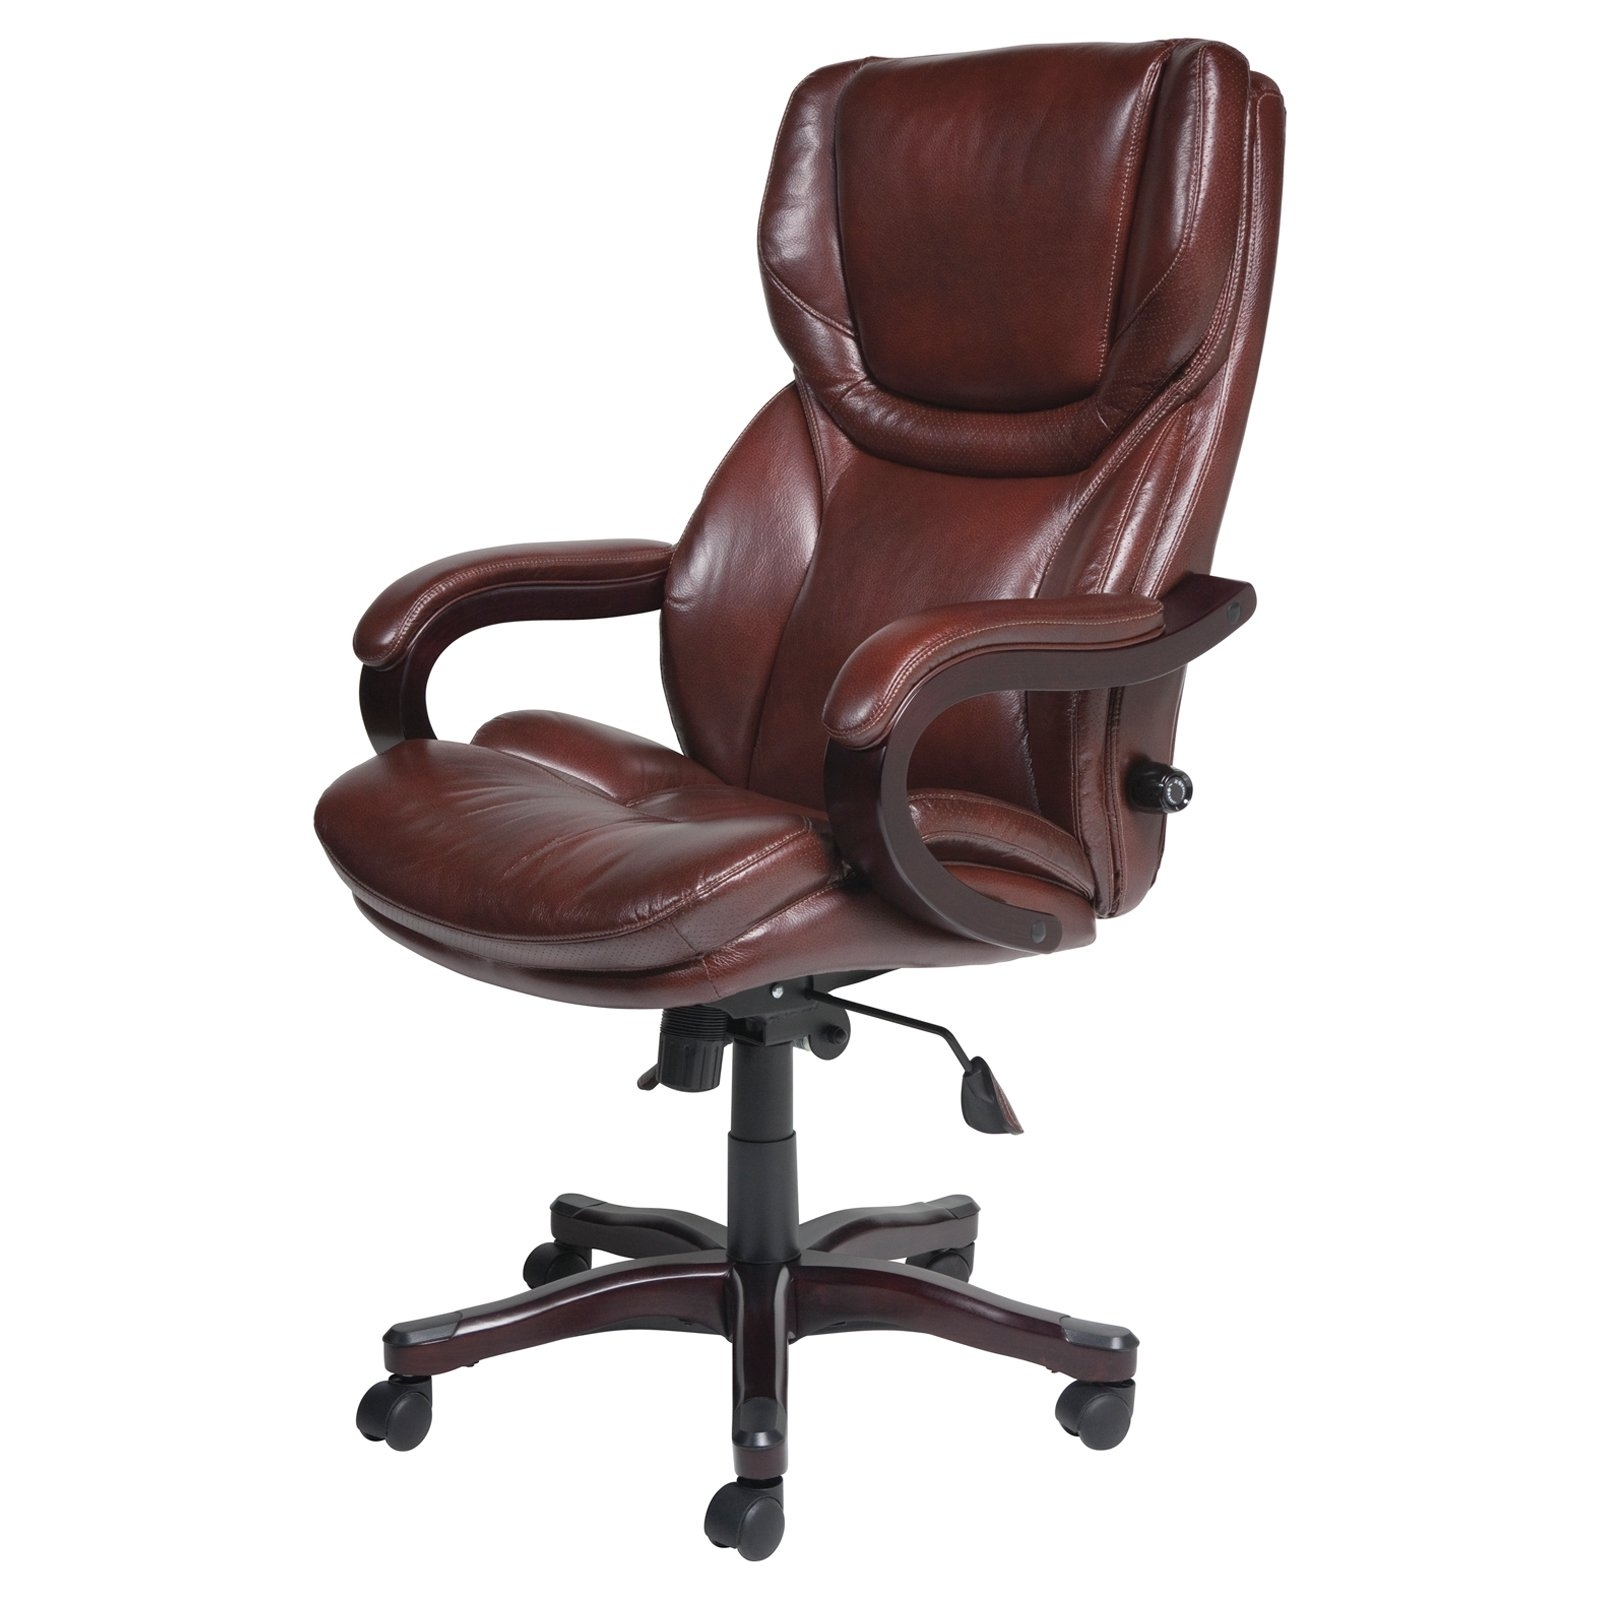 Chair : Ergonomic Black Leather Executive Office Chair Verona Within Best And Newest Executive Office Swivel Chairs (View 9 of 20)